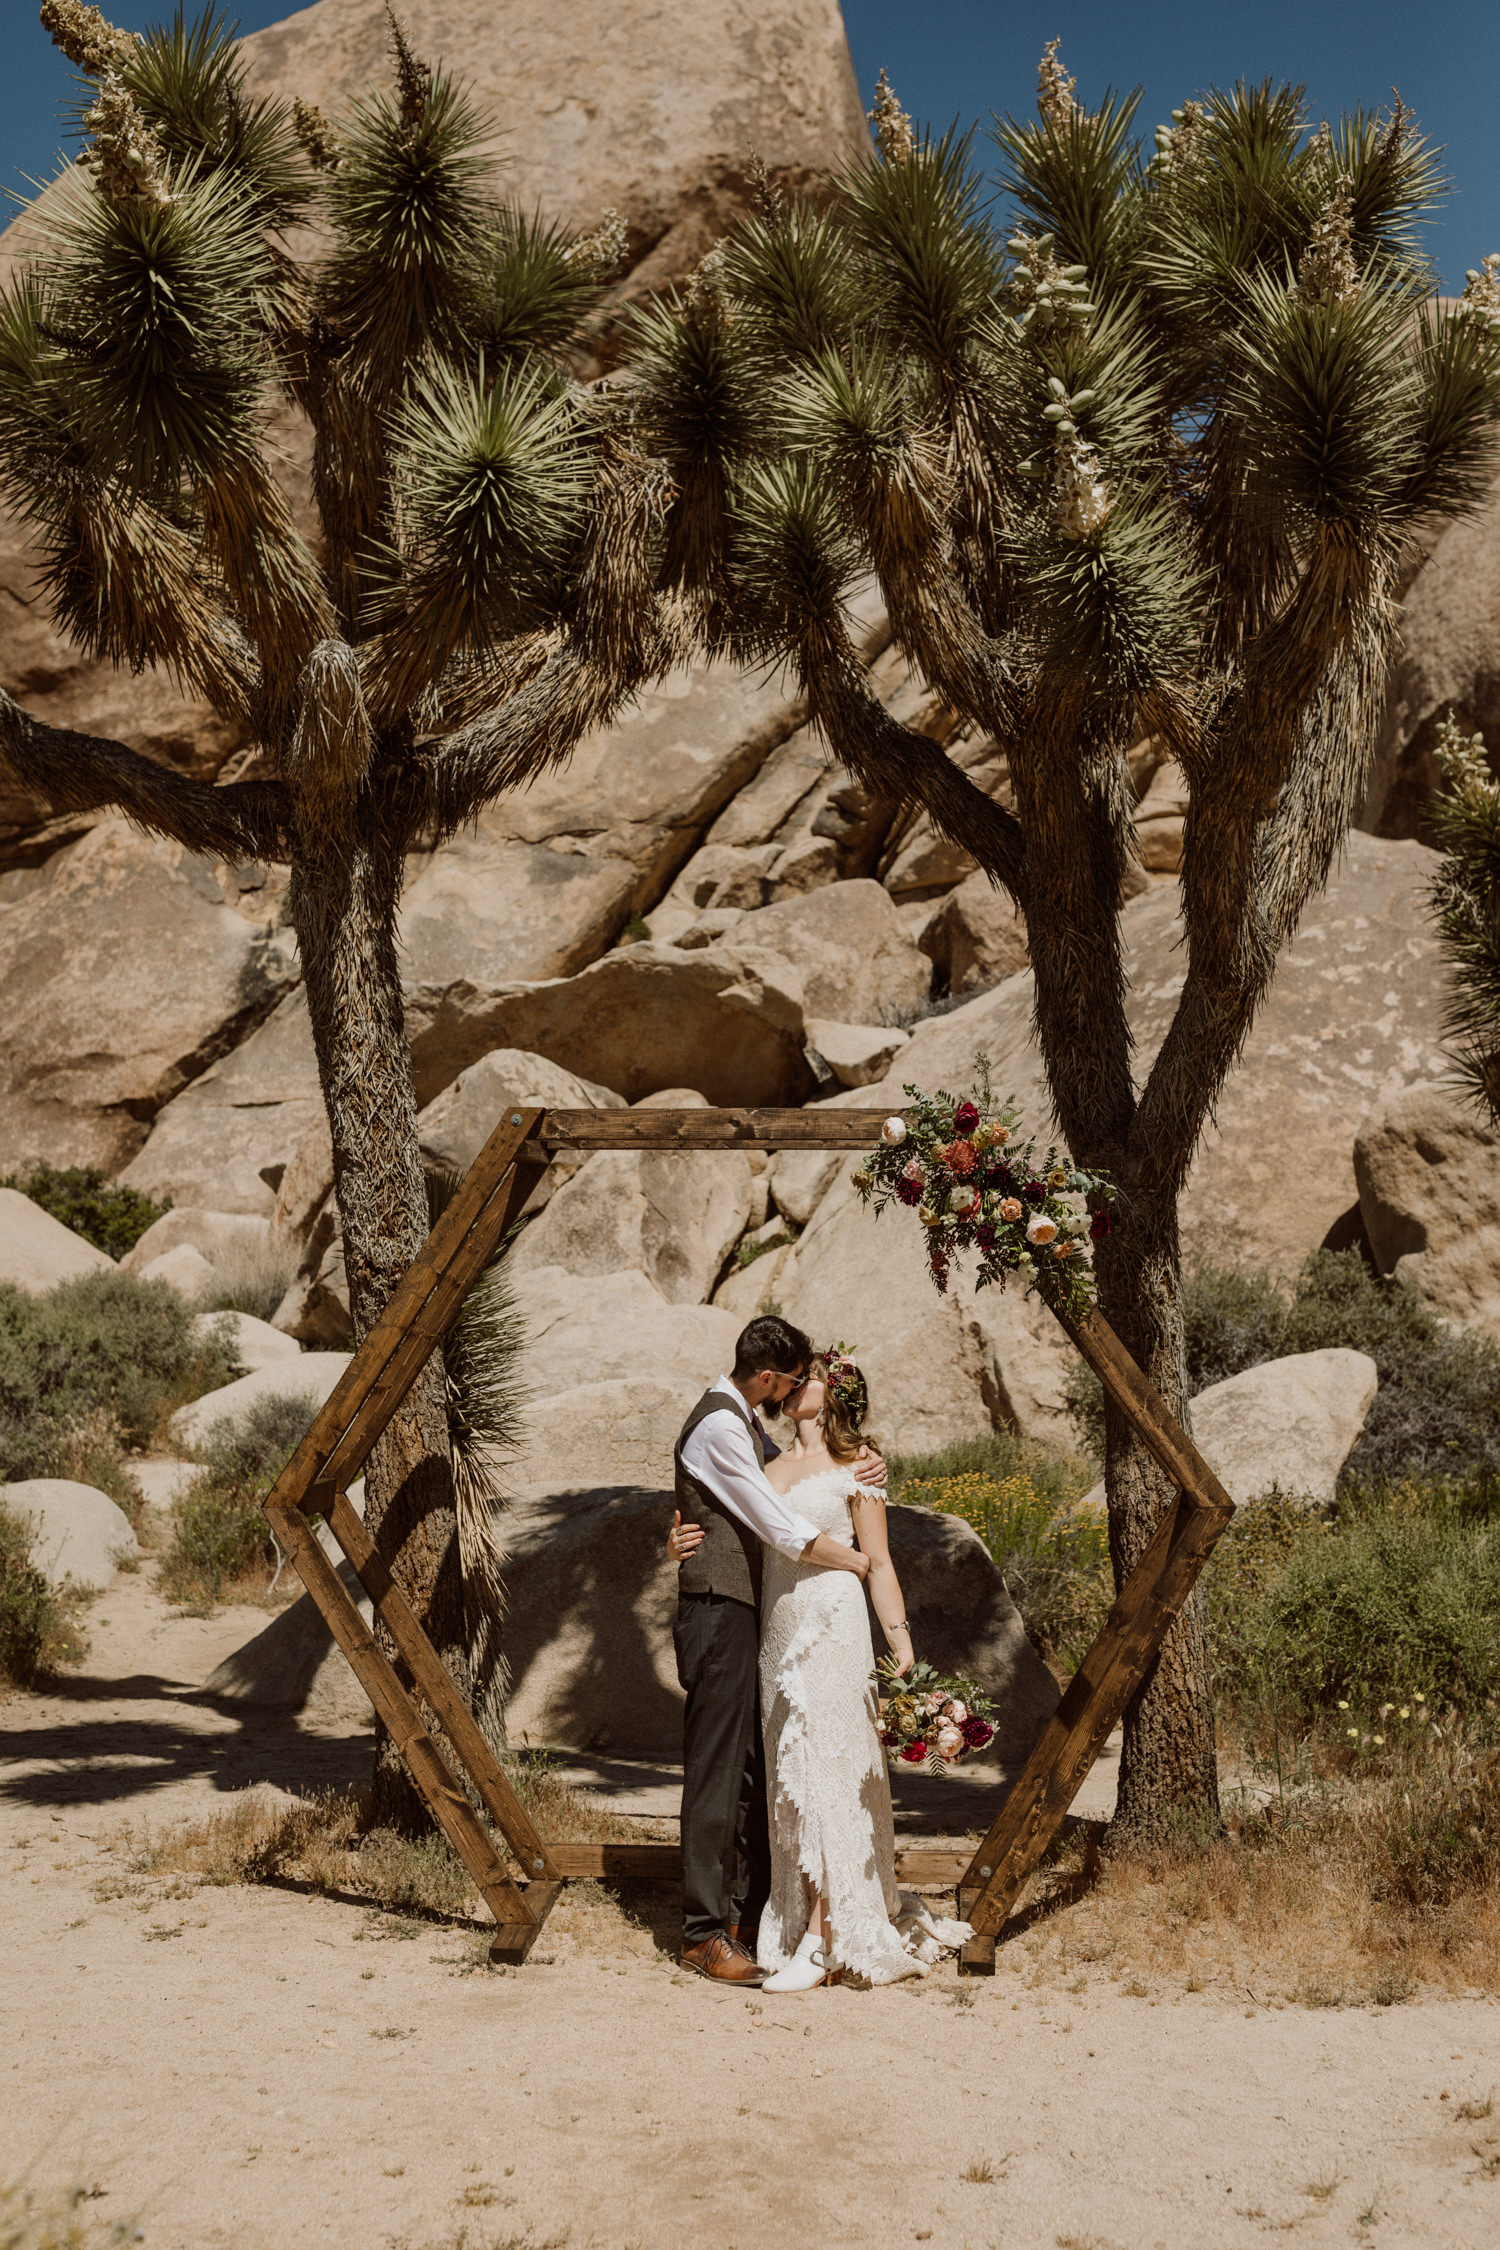 joshua-tree-national-park-elopement-26.jpg